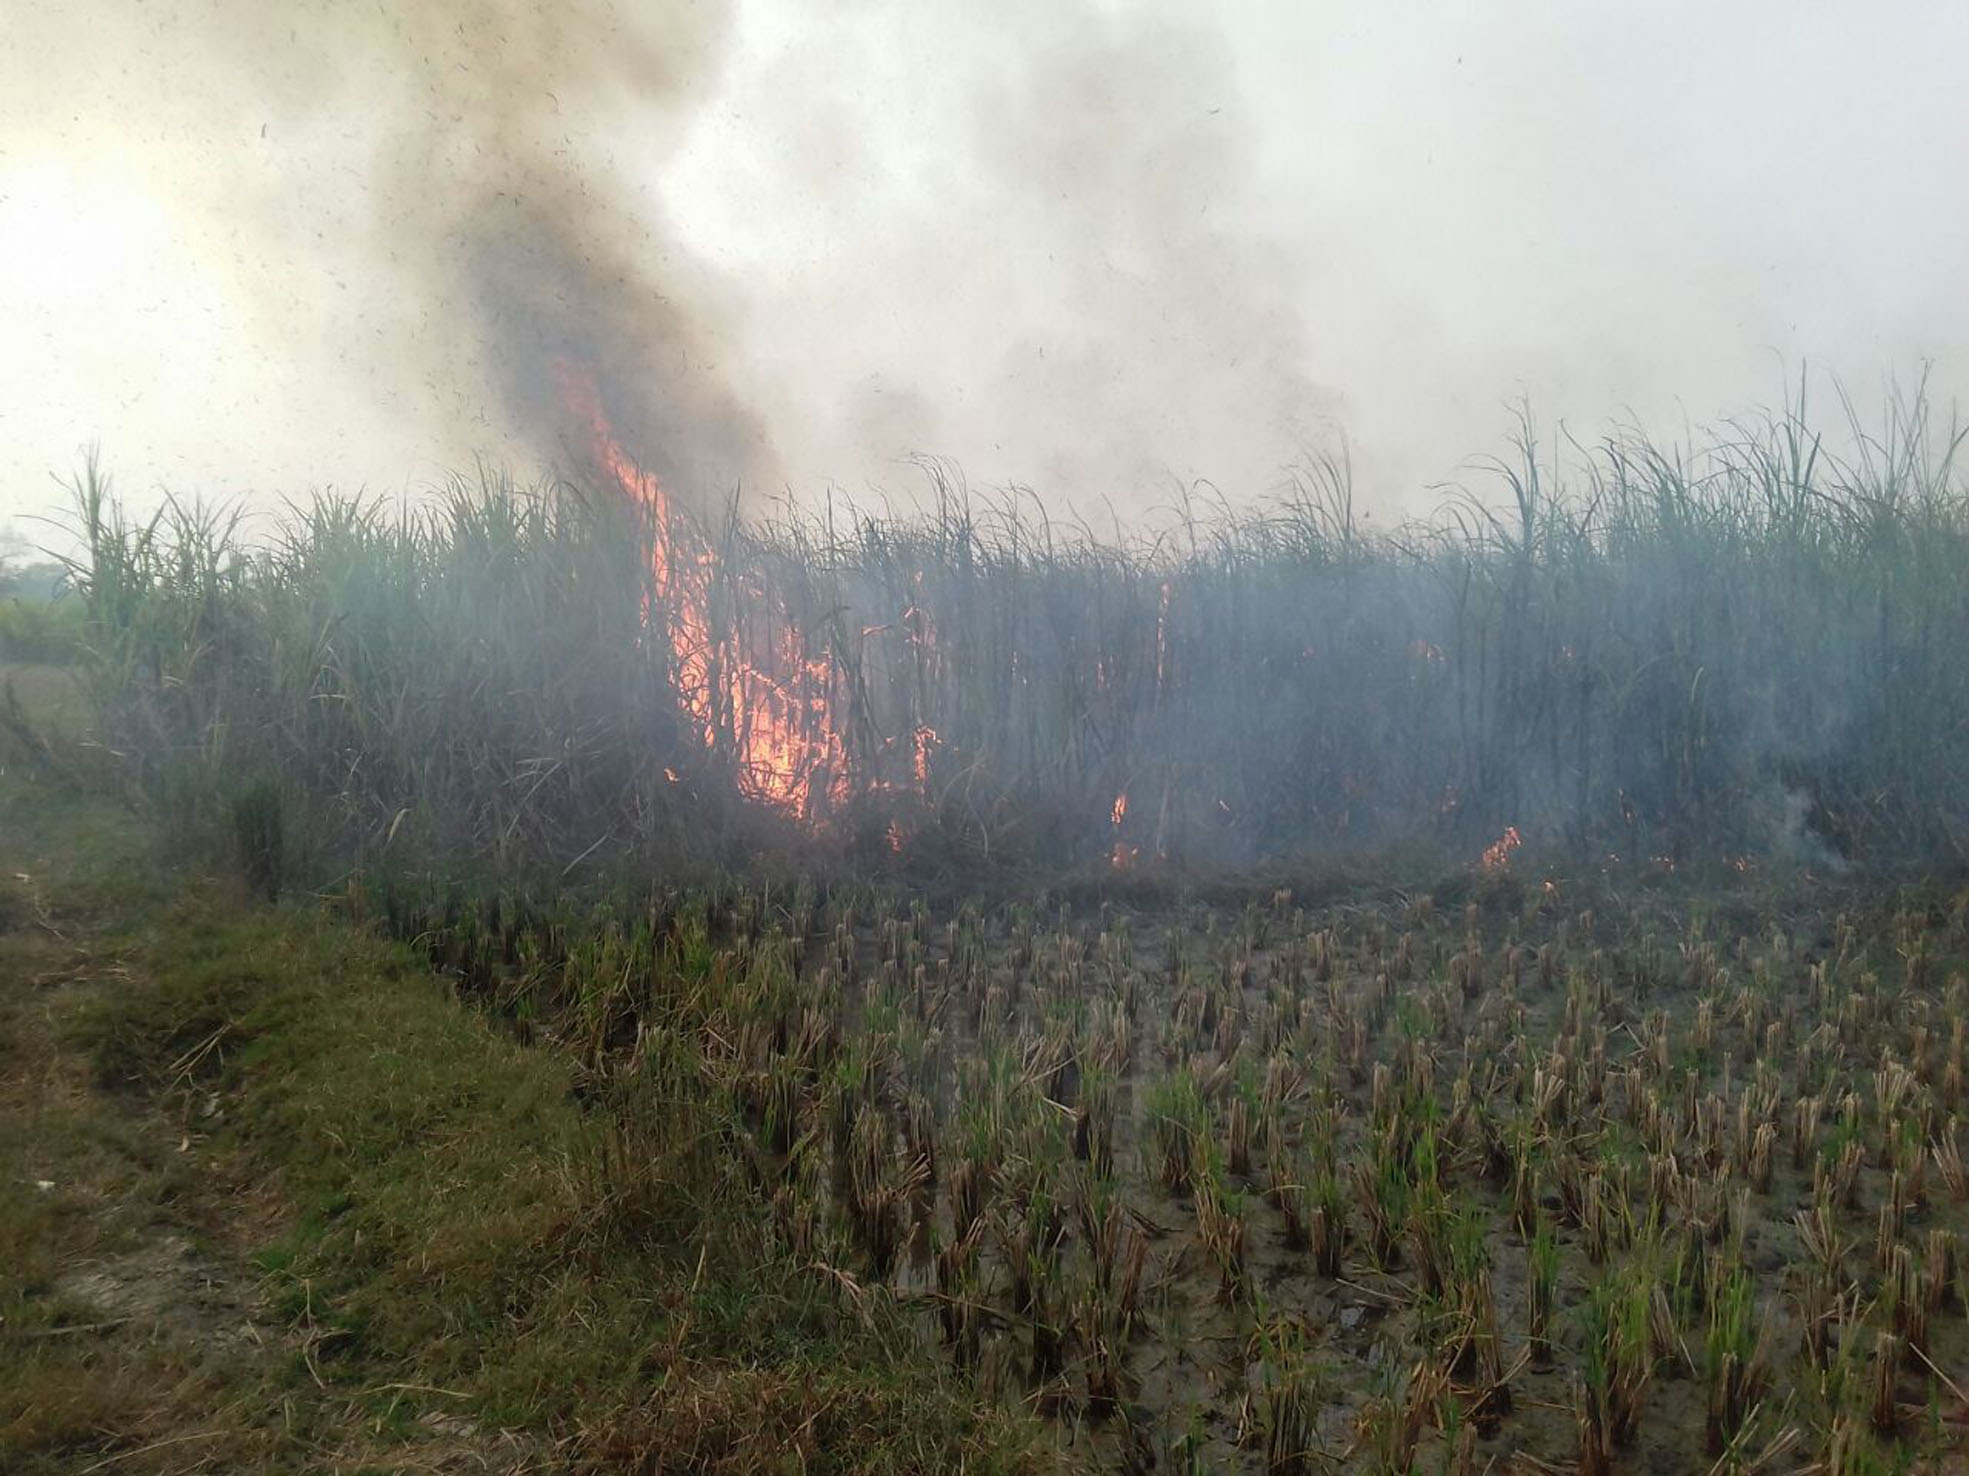 Wire fire broke out in the sugarcane